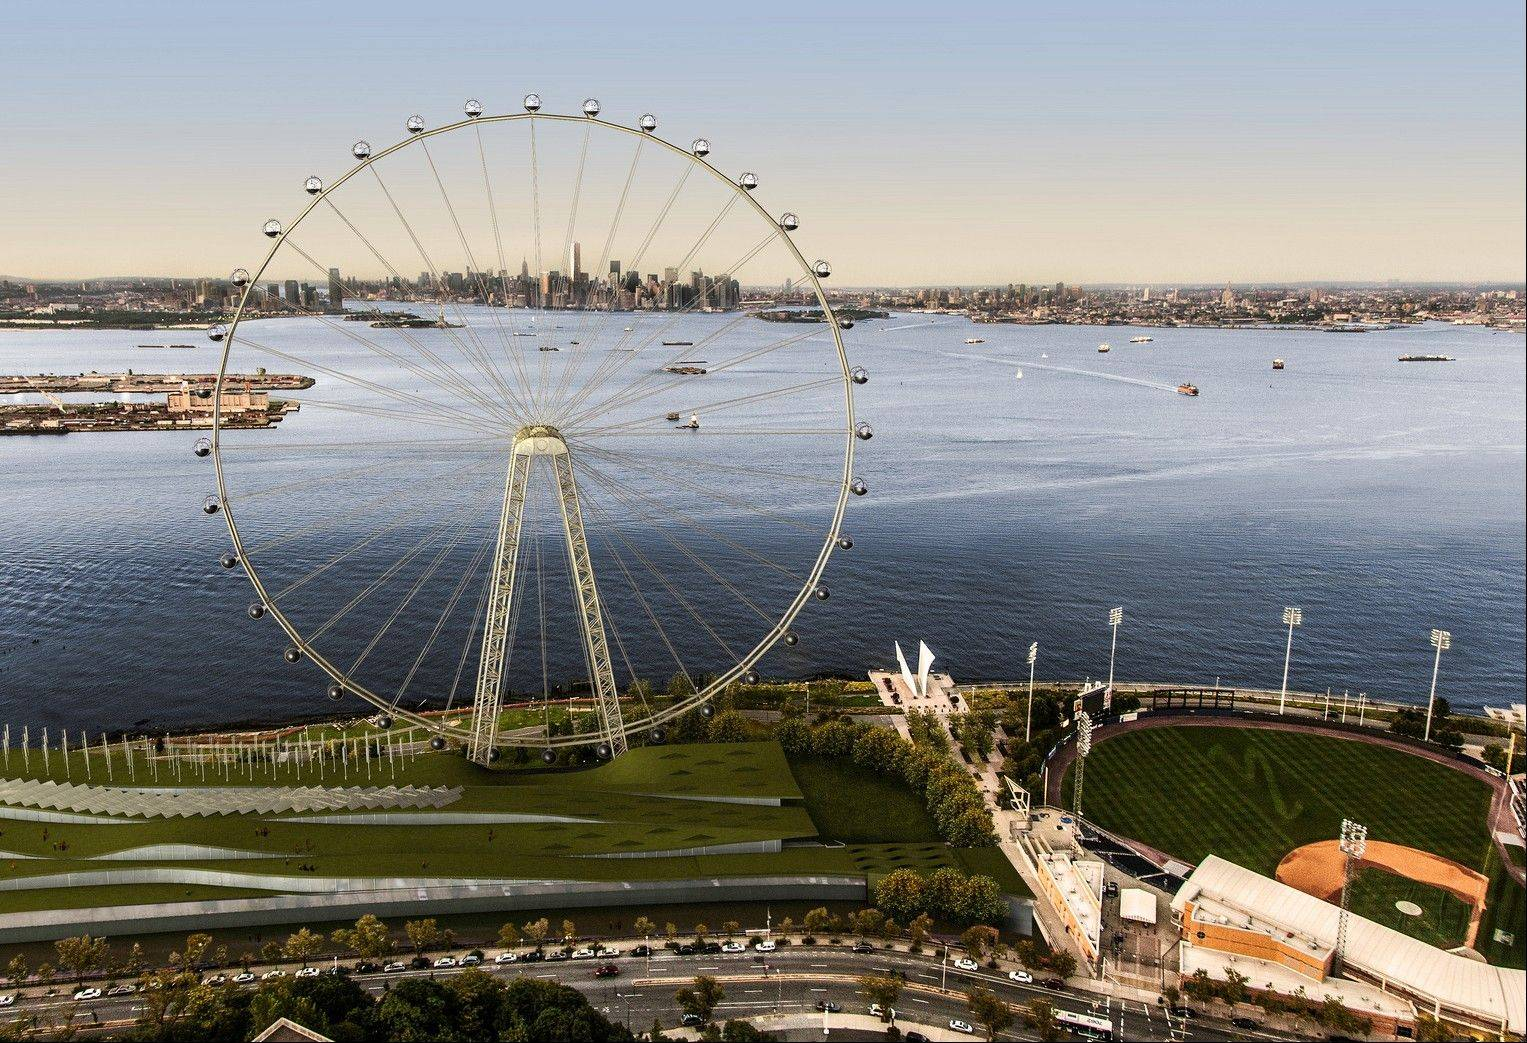 An artist's rendering of a proposed 625-foot Ferris wheel, billed as the world's largest, planned as part of a retail and hotel complex along the Staten Island waterfront in New York. The attraction, called the New York Wheel, will cost $230 million.